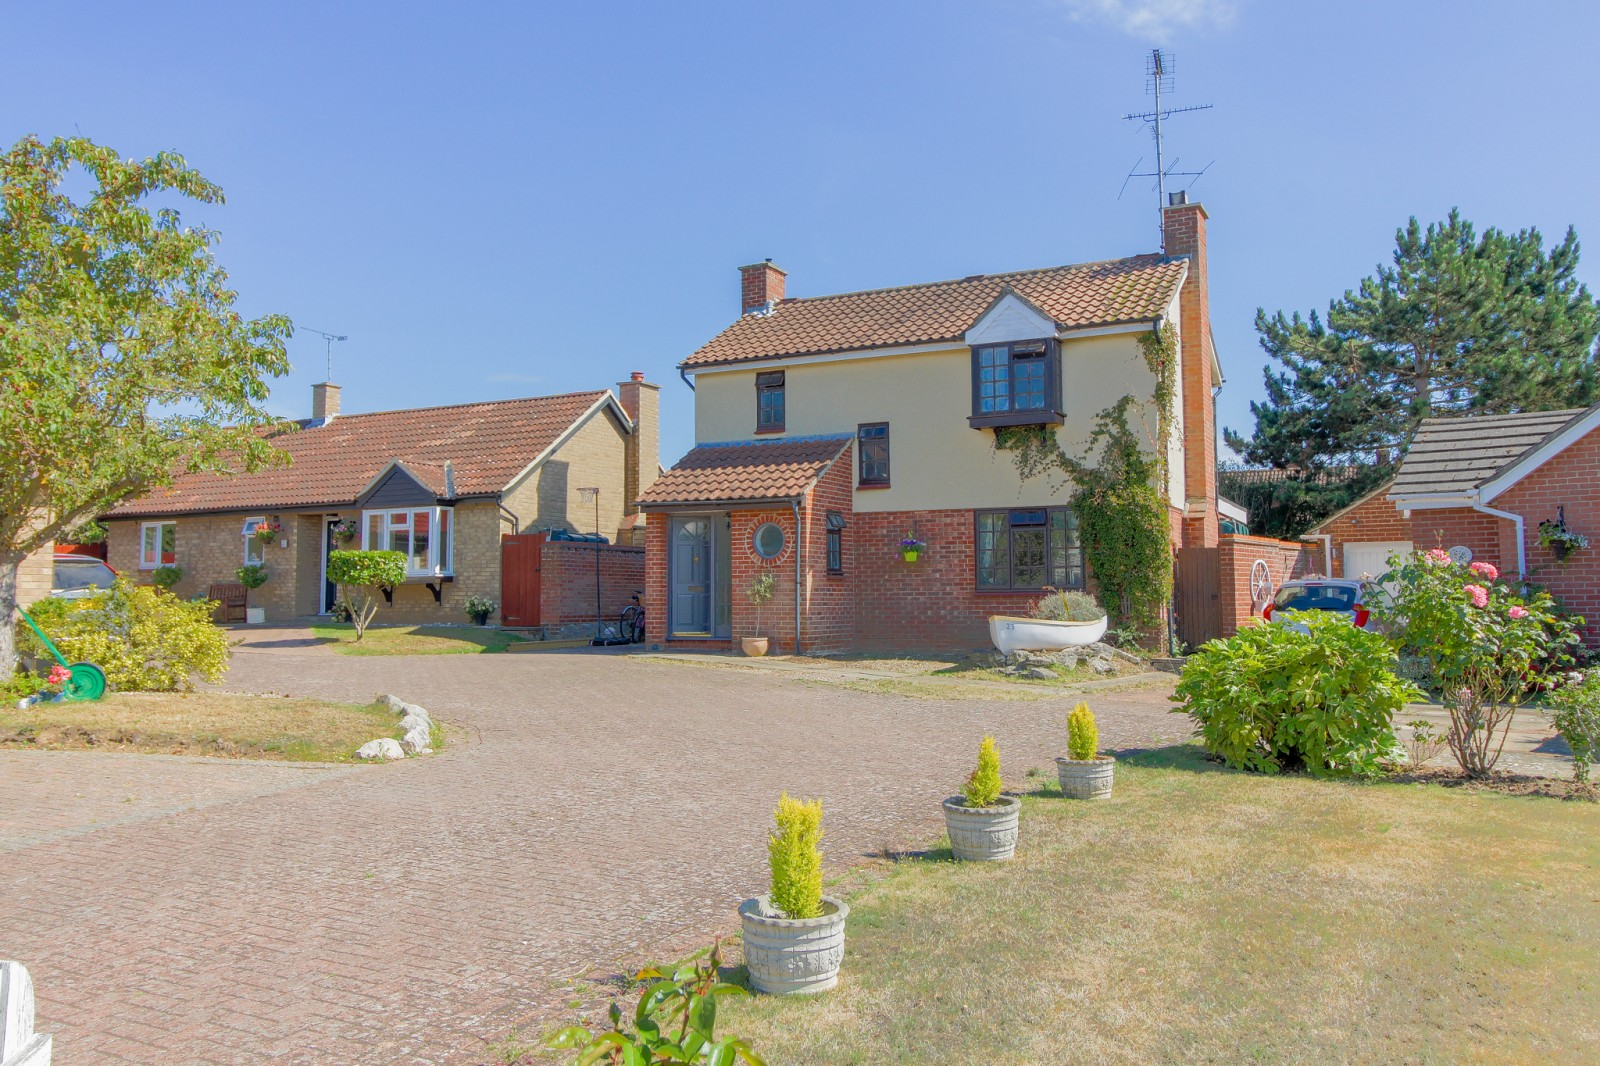 Kingsmere Close, West Mersea, Colchester, Essex, CO5